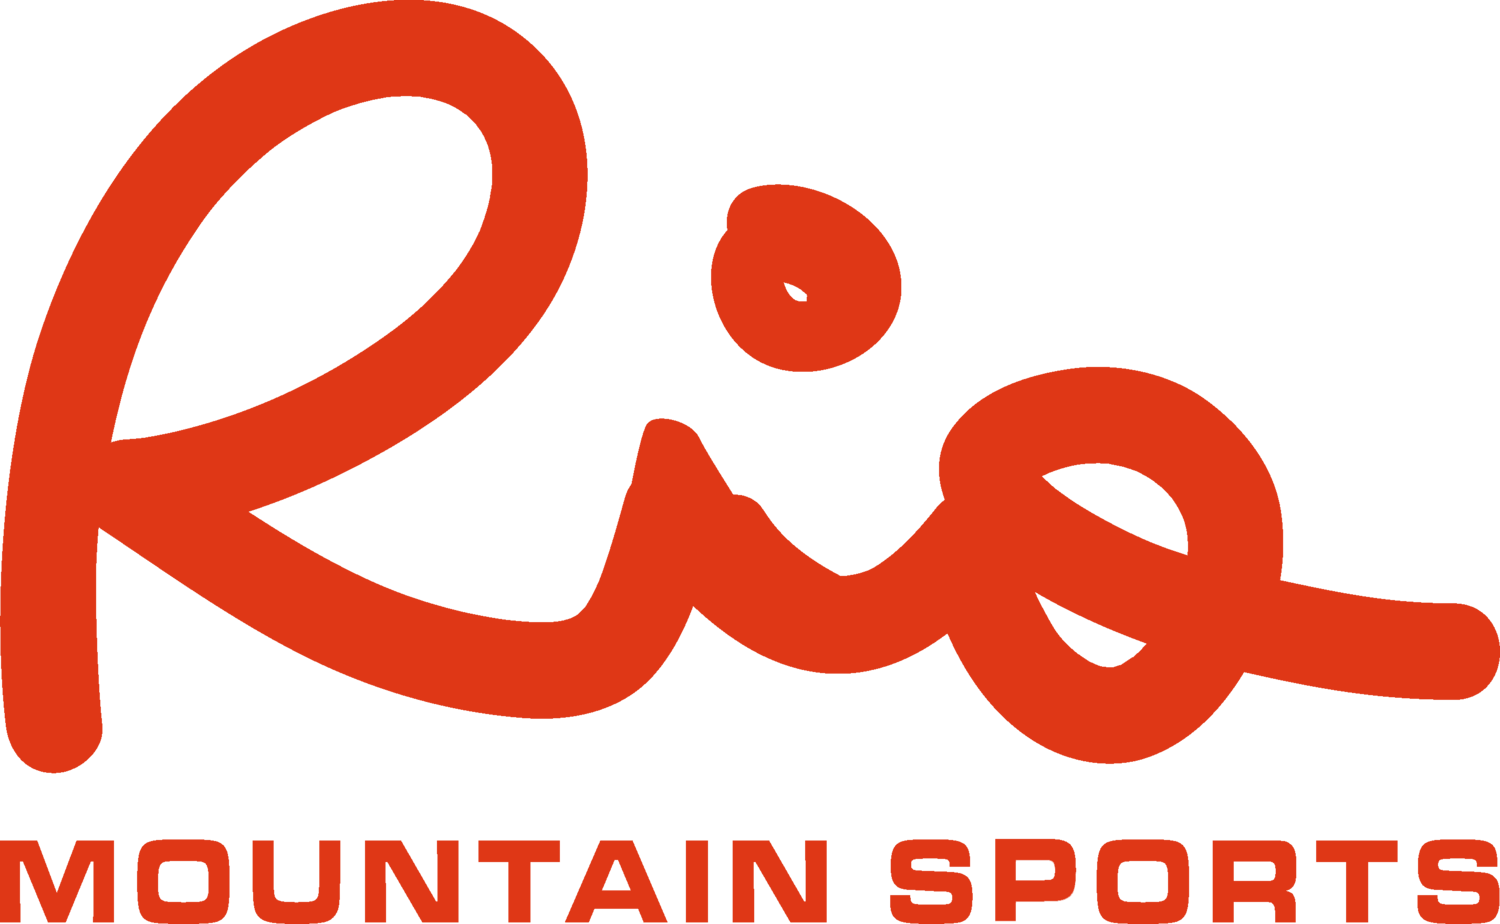 Rio Mountain Sports